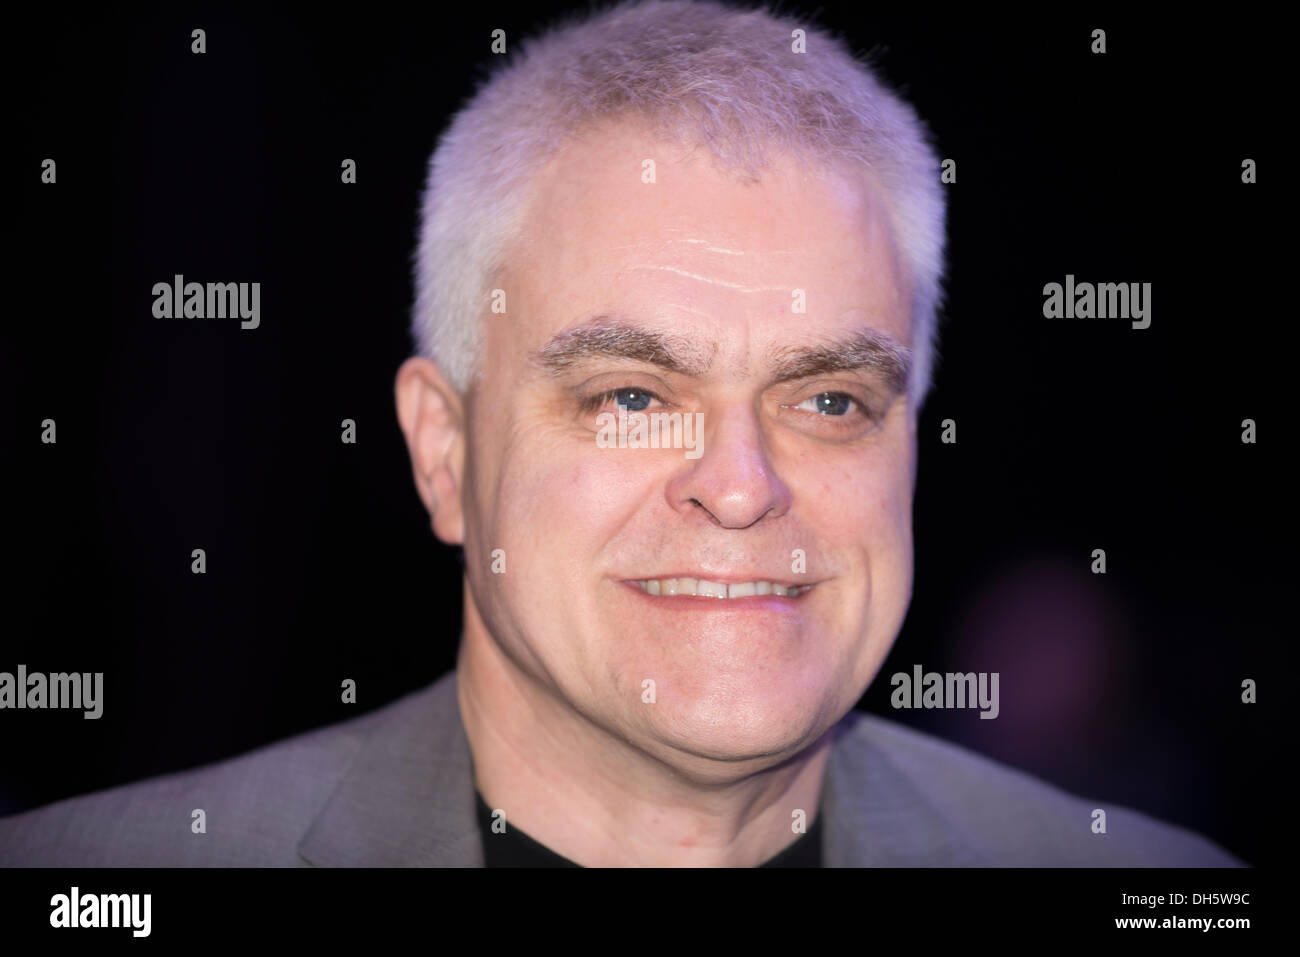 London, UK. 1st November 2013. The Gadget Show Live @ Christmas, Earls Court, London. Jon Bentley of Channel 5 Gadget Show at the opening of the Earls Court Live Show Credit:  Malcolm Park editorial/Alamy Live News - Stock Image